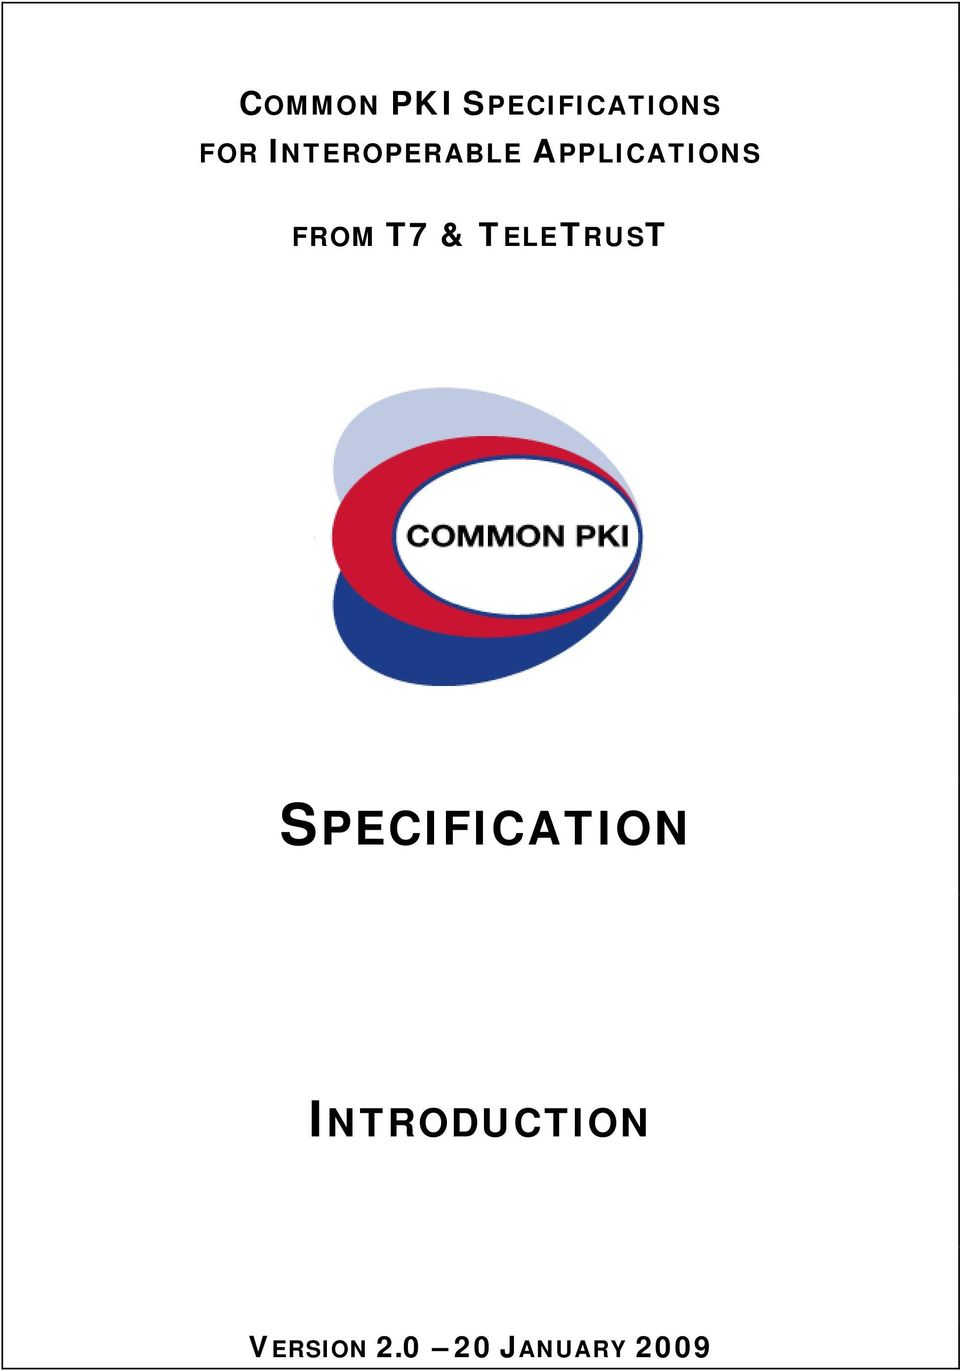 T7 & TELETRUST SPECIFICATION